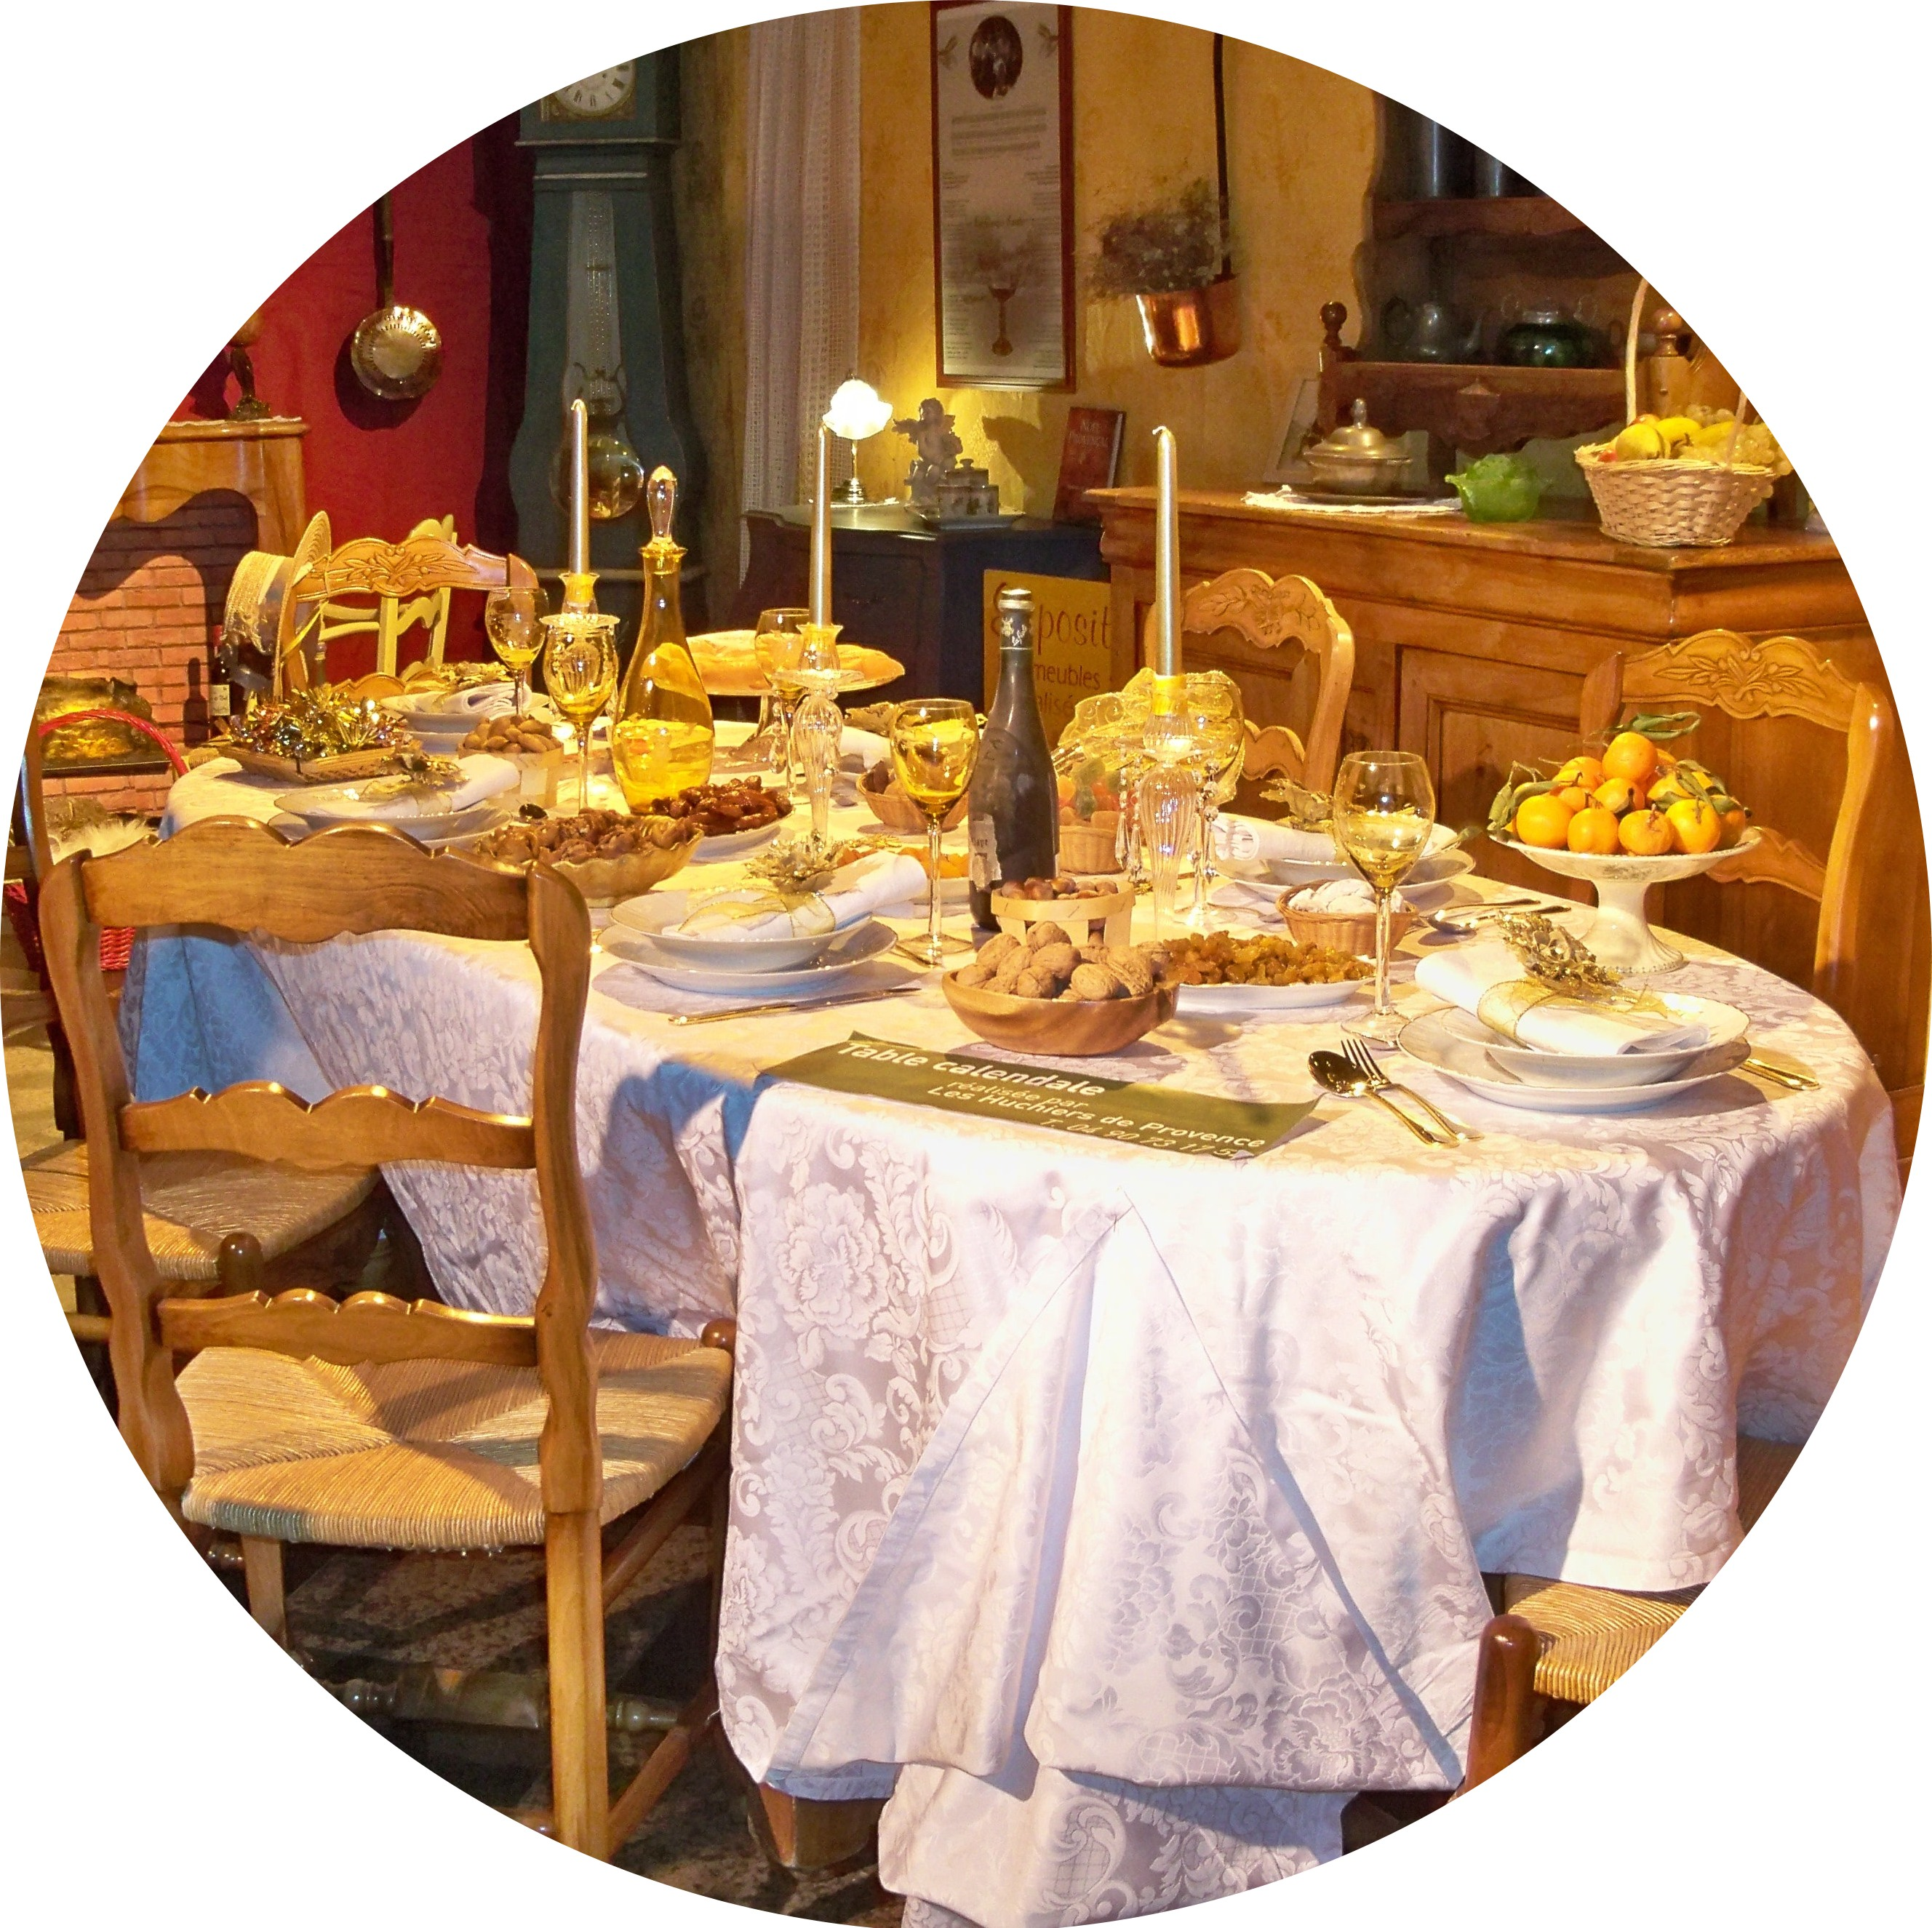 MyFrenchLife™ - MyFrenchLife.org - Jan_Leishman - Exploring_Provence_Christmas - gros_souper_table